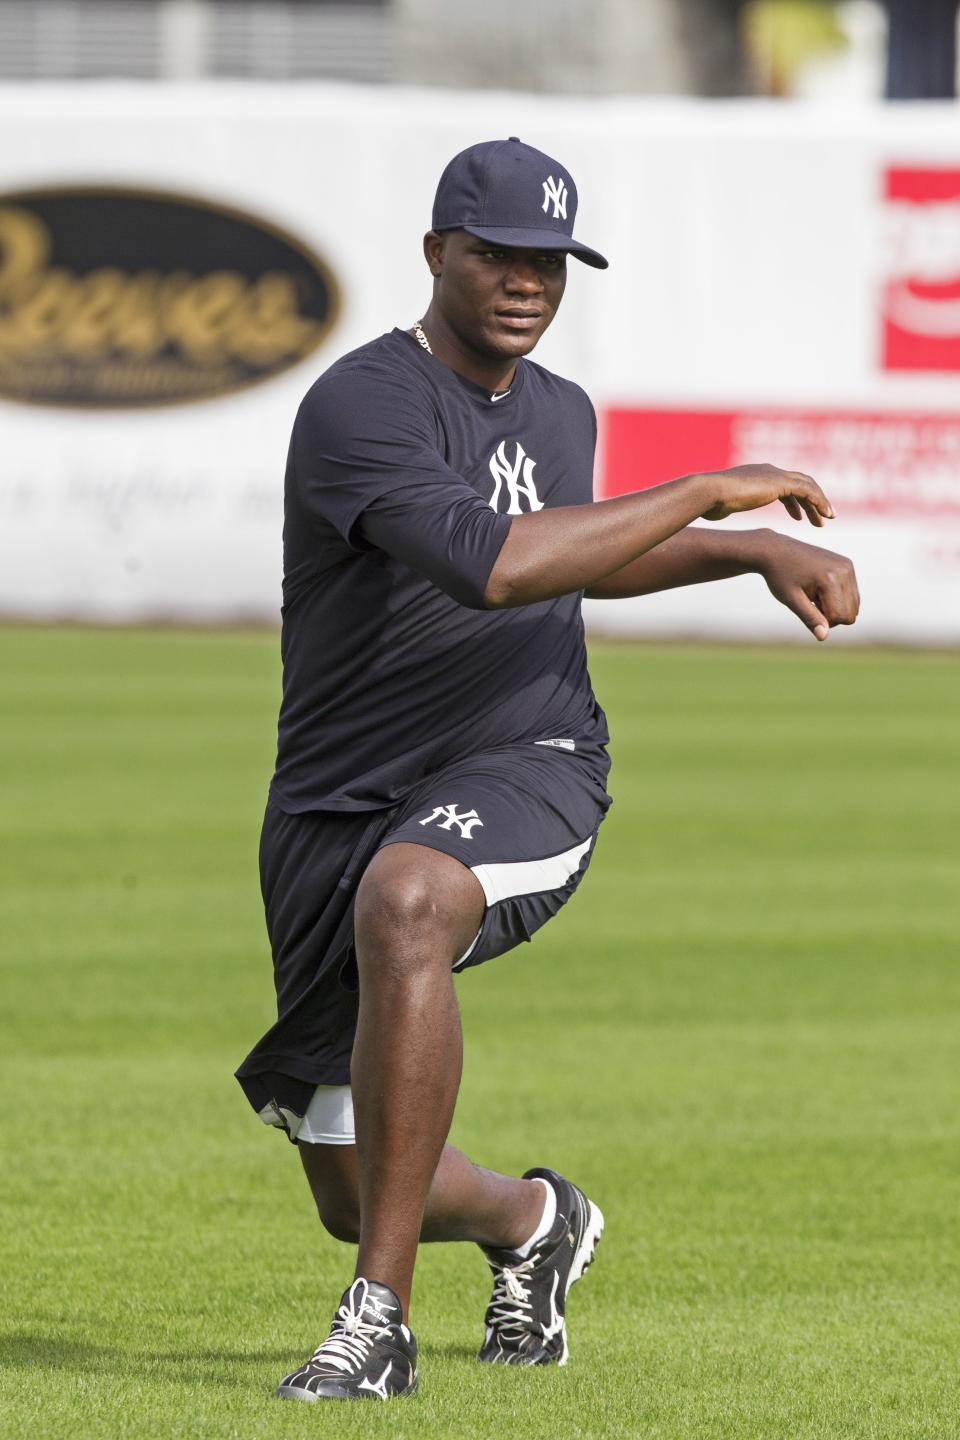 New York Yankees pitcher Michael Pineda stretches during baseball spring training at George M. Steinbrenner Field Tuesday, Feb. 12, 2013, in Tampa, Fla. (AP Photo/Scott Iskowitz)